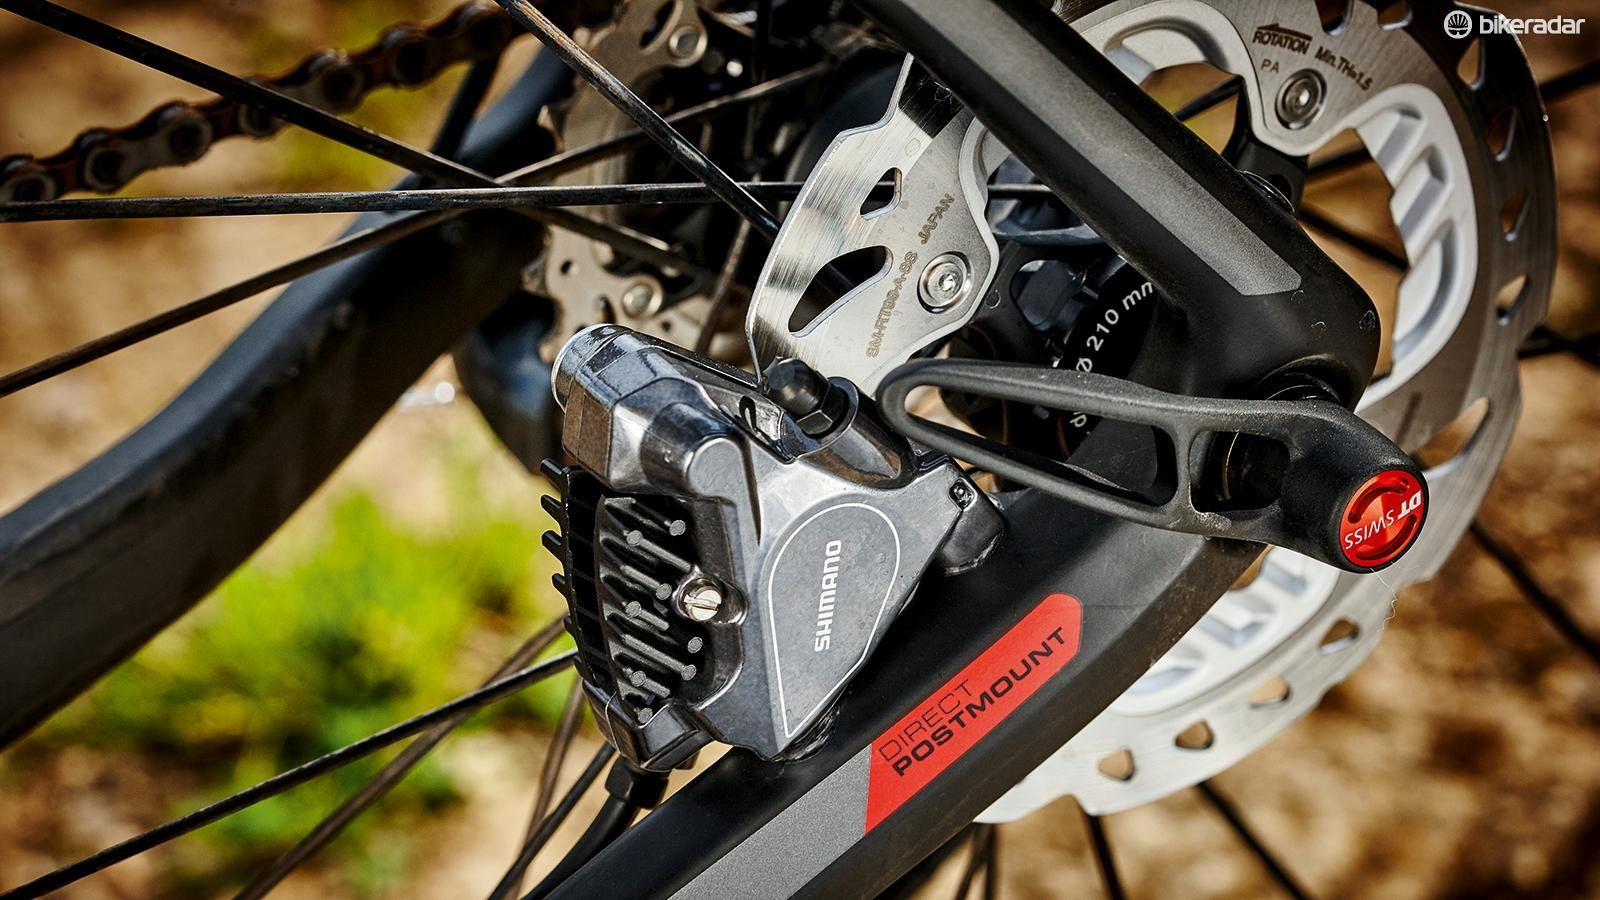 Shimano BR-RS805 brakes come with sensibly sized 160 and 140mm rotors